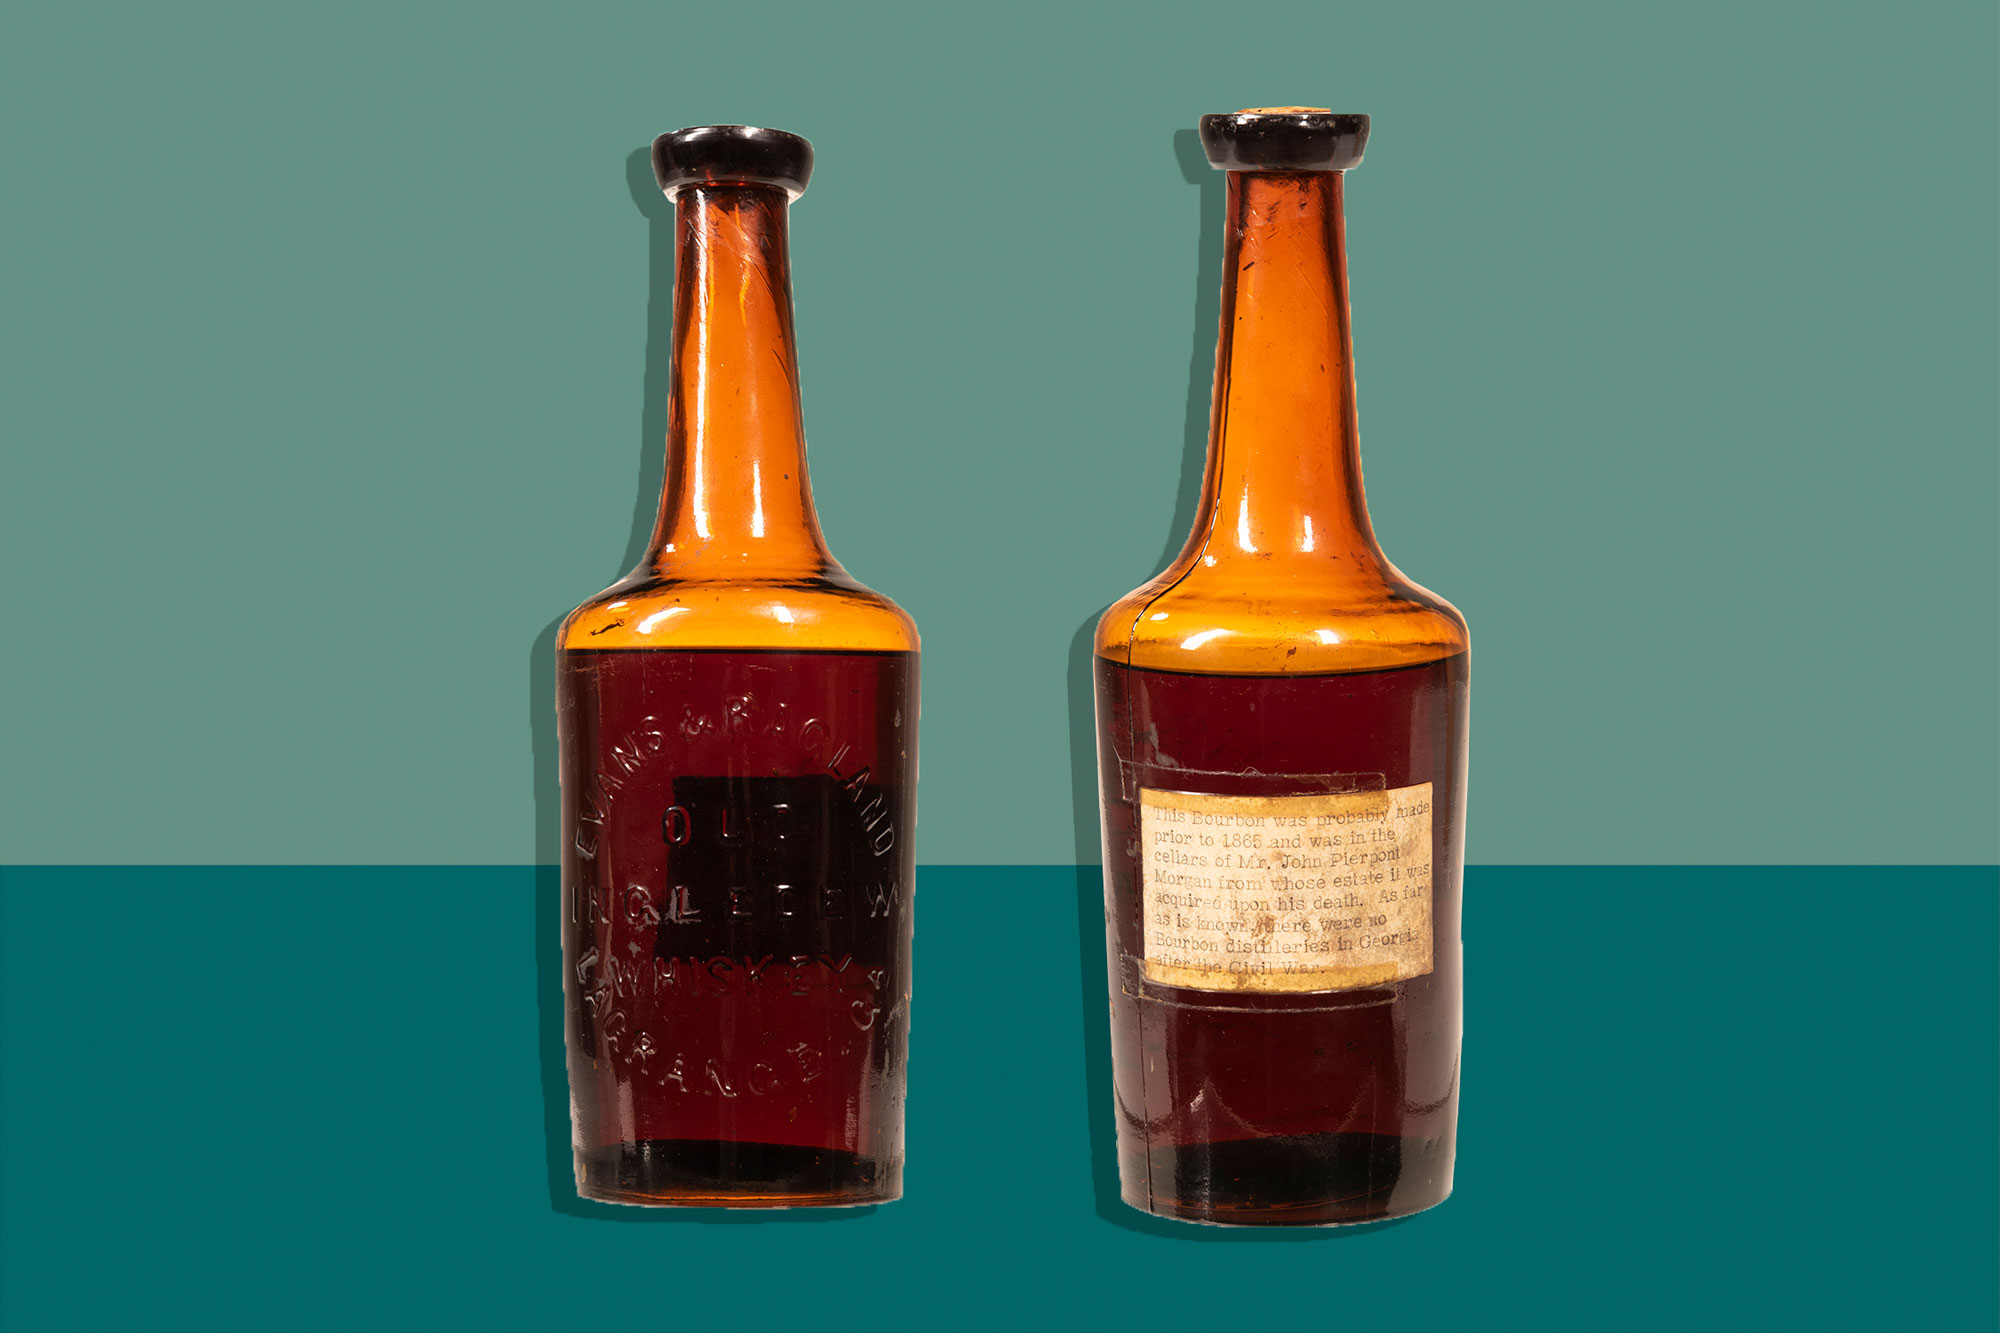 The World's Oldest Known Bottle Of Whiskey Sold For SGD 186,429